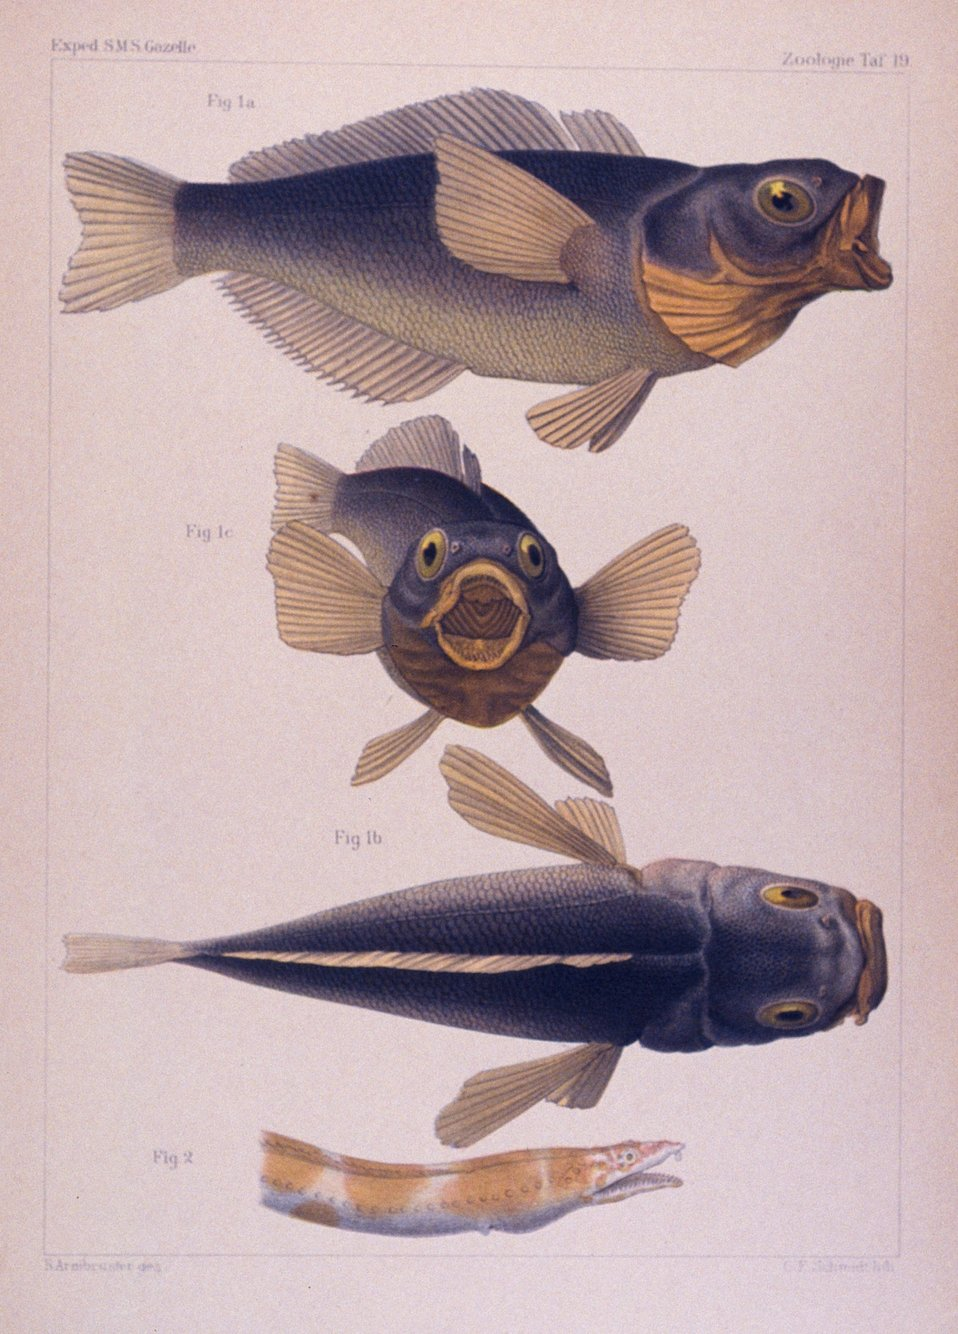 Drawings of fish captured during the GAZELLE expedition.